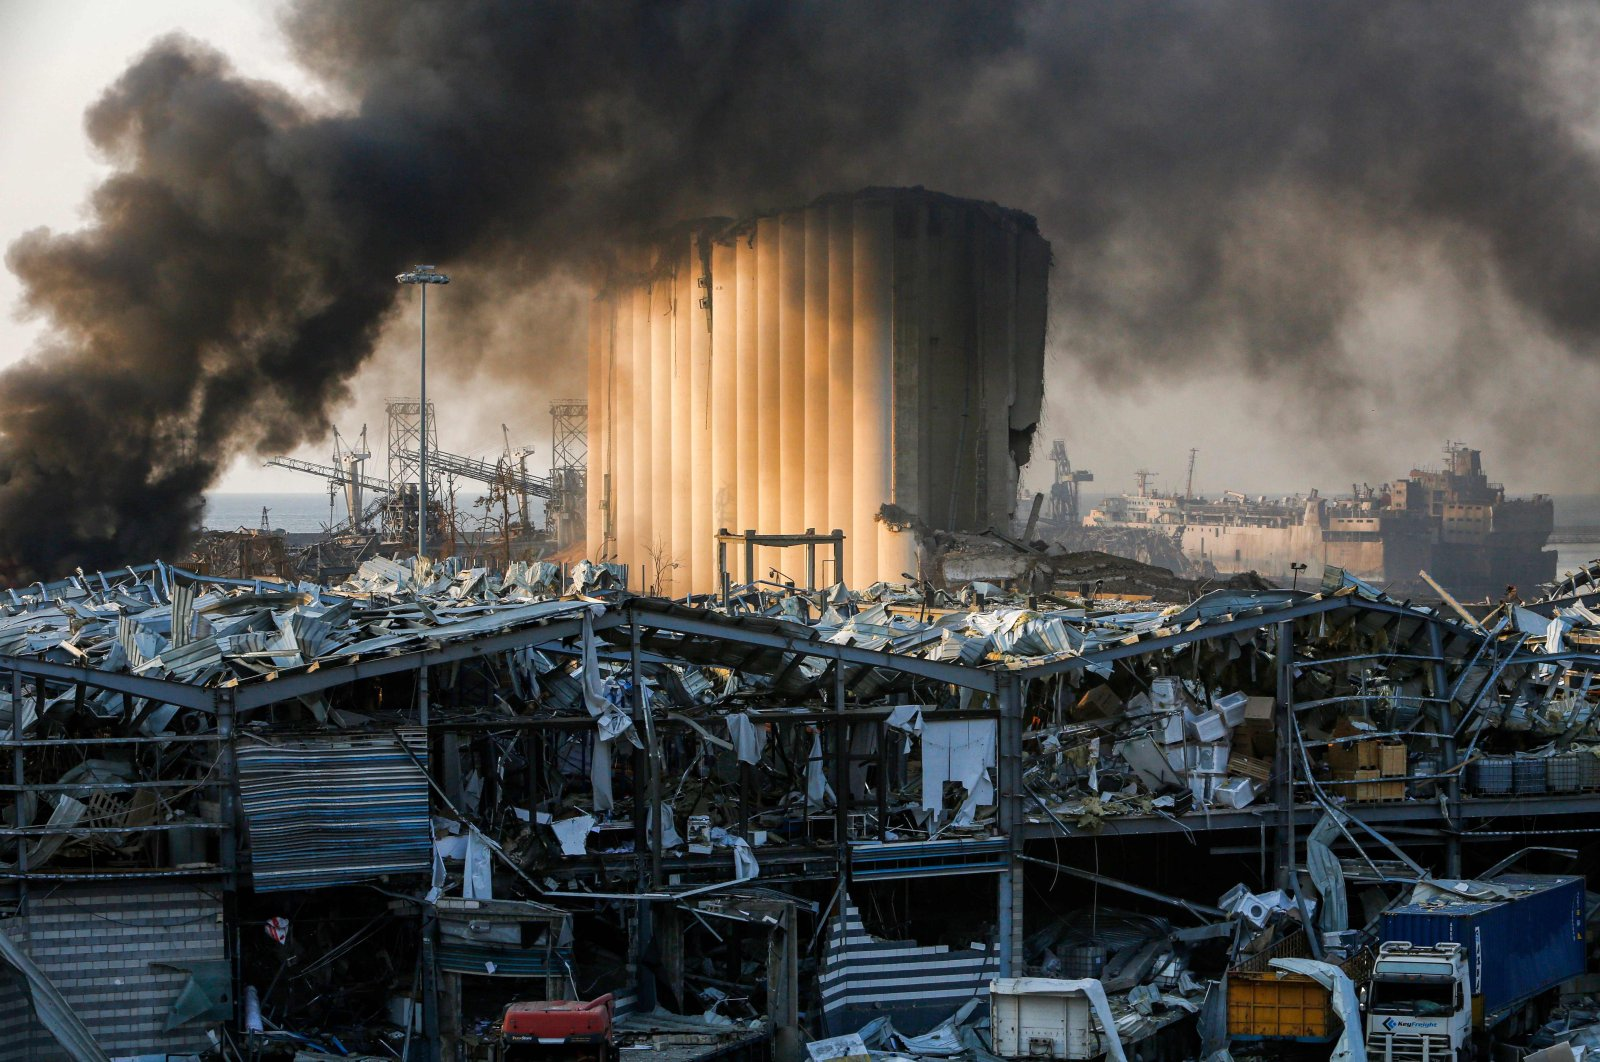 A destroyed silo at the scene of the explosion that rocked the Lebanese capital Beirut on Aug. 4, 2020. (AFP Photo)